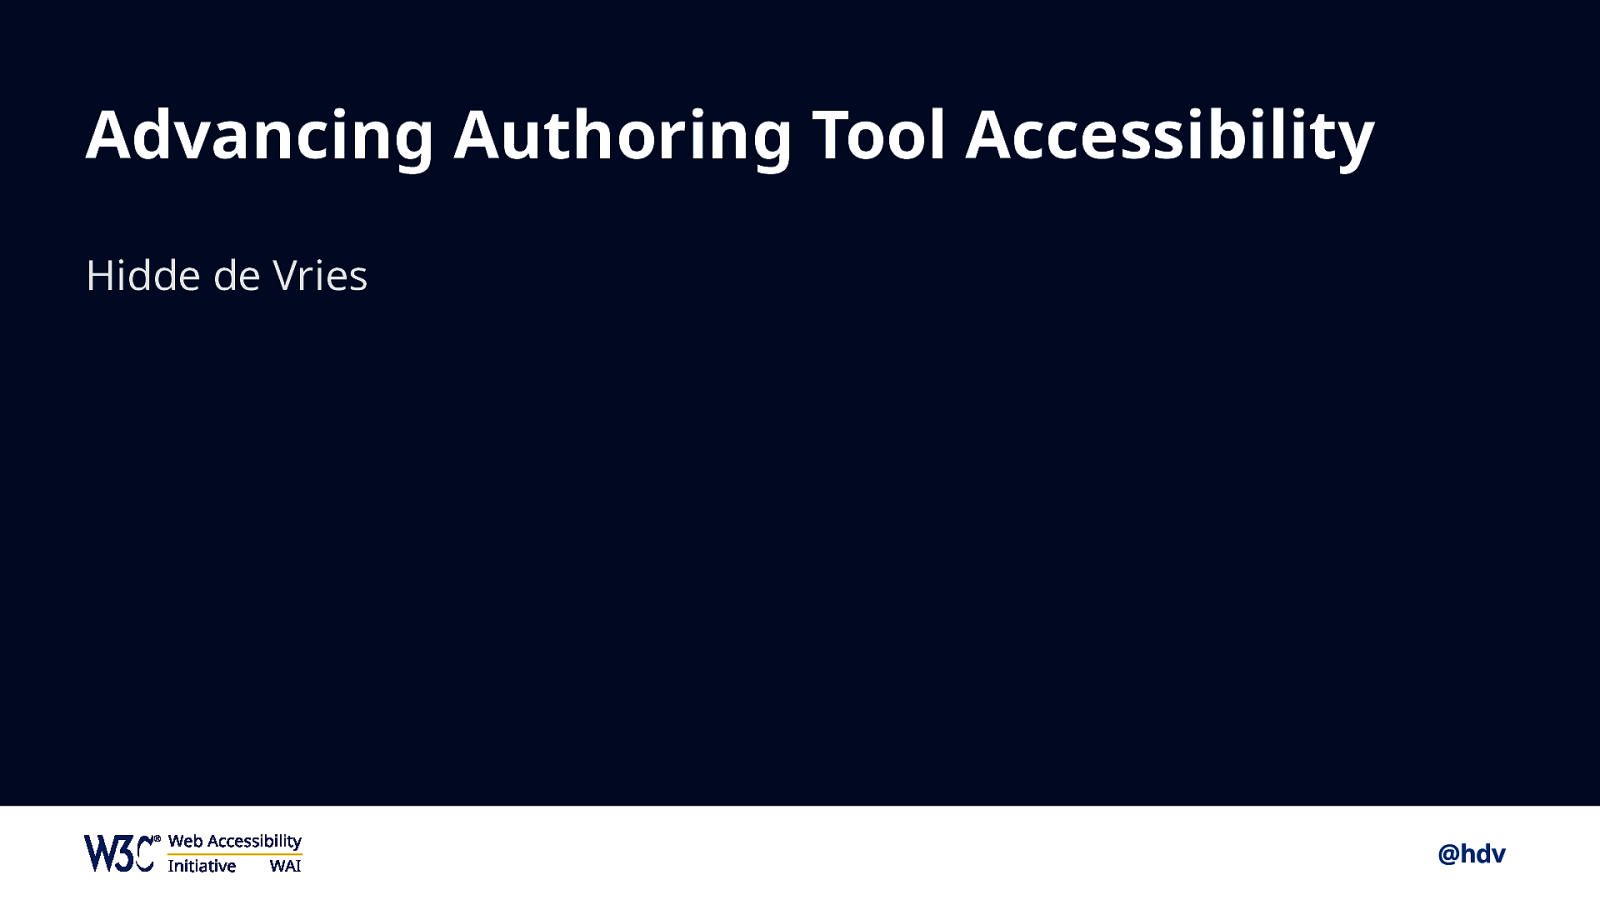 Advancing authoring tool accessibility